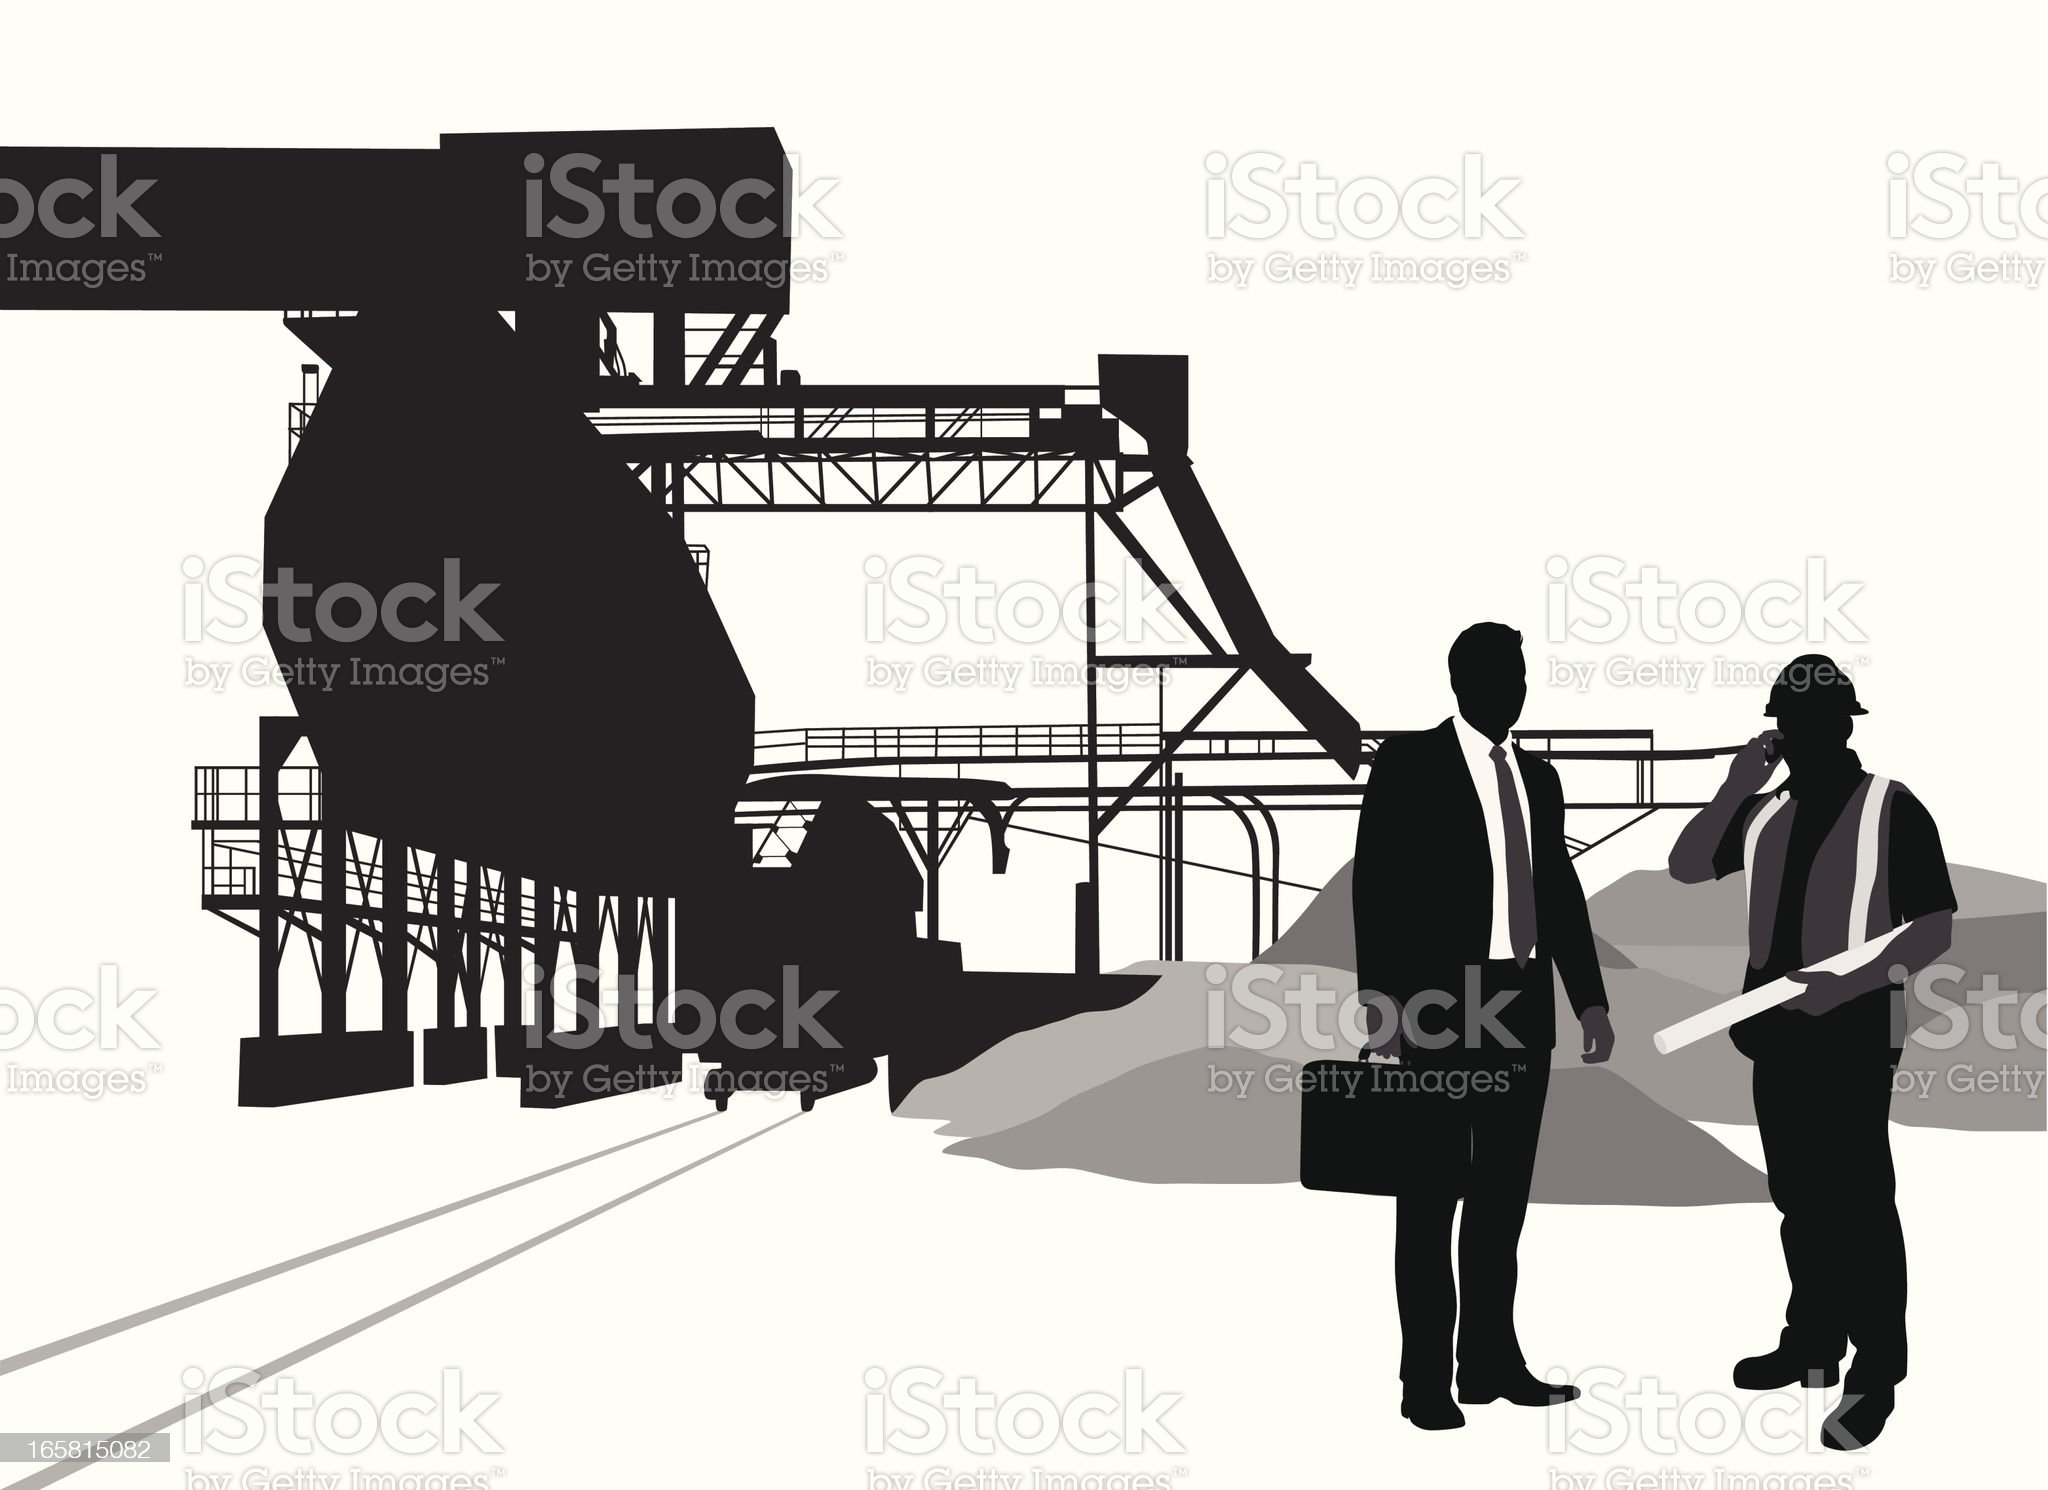 Industrial Vector Silhouette royalty-free stock vector art